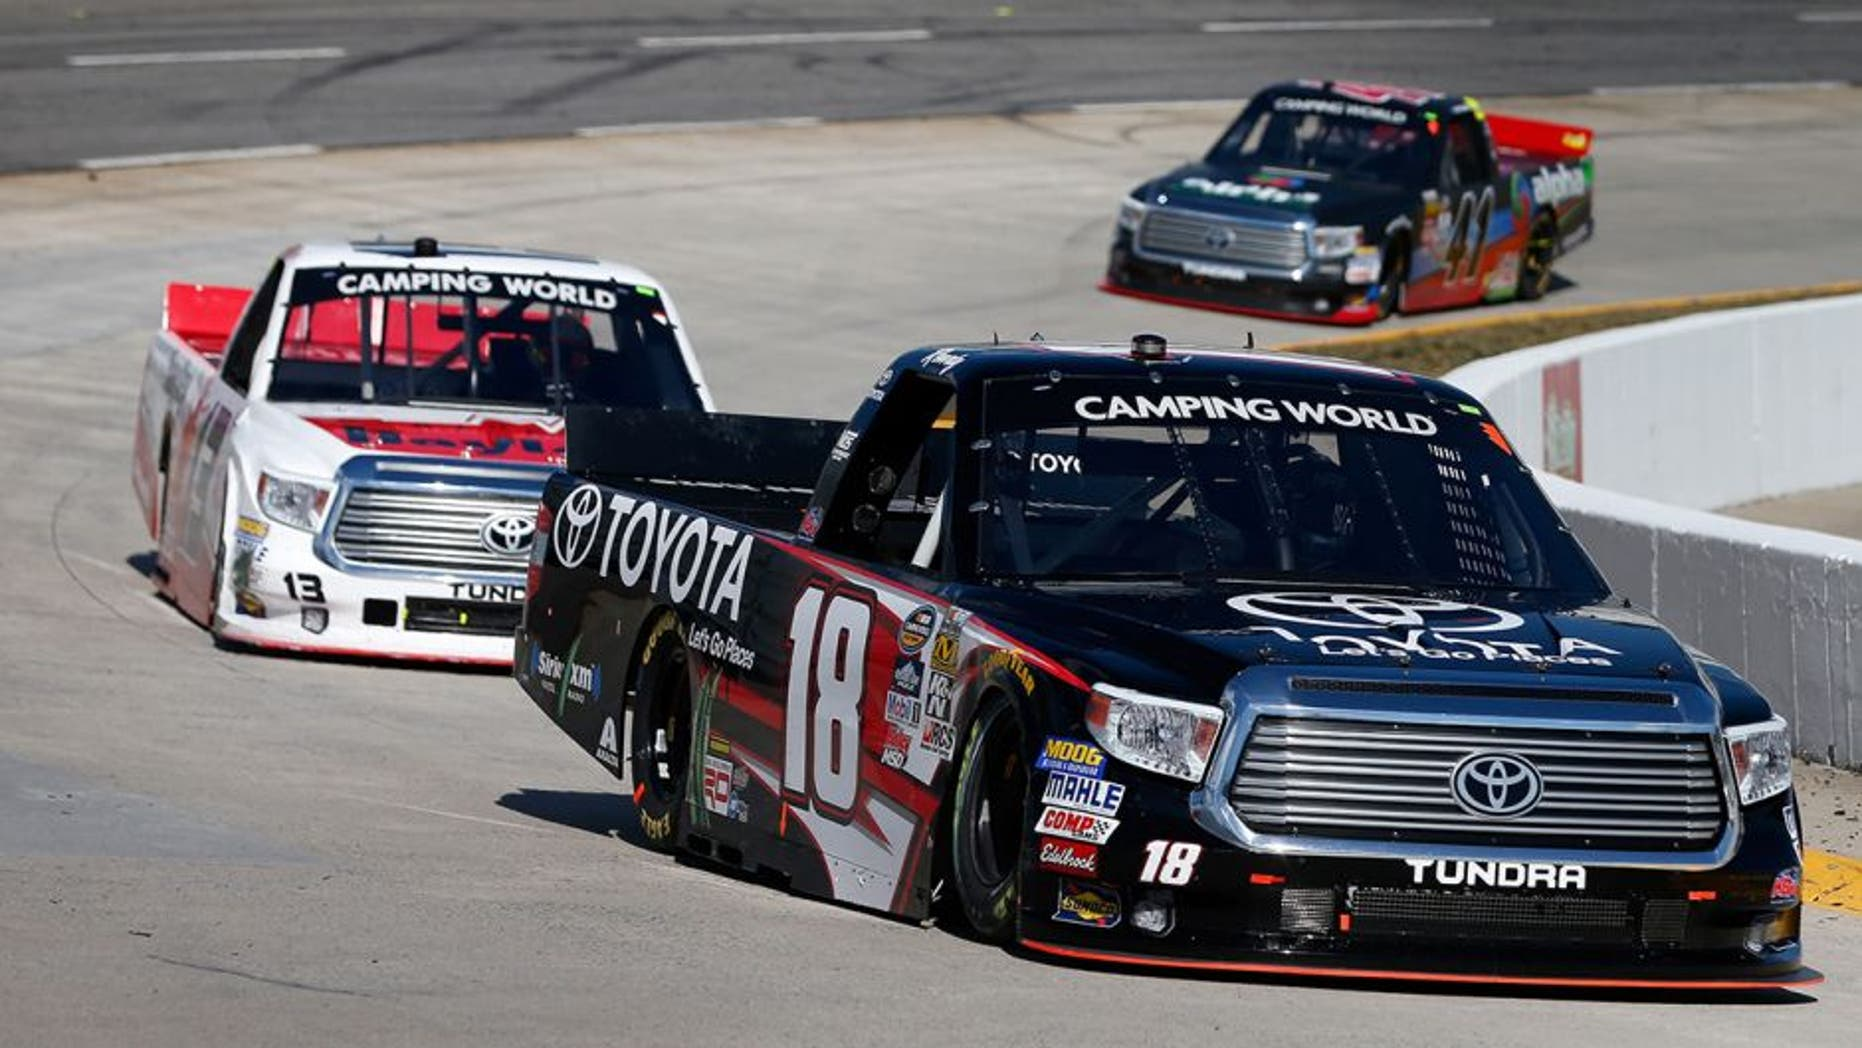 MARTINSVILLE, VA - APRIL 02: Kyle Busch, driver of the #18 Toyota Toyota, leads Cameron Hayley, driver of the #13 Cabinets by Hayley Toyota, and Ben Rhodes, driver of the #41 Alpha Energy Solutions Toyota, during the NASCAR Camping World Truck Series Alpha Energy Solutions 250 at Martinsville Speedway on April 2, 2016 in Martinsville, Virginia. (Photo by Brian Lawdermilk/Getty Images)